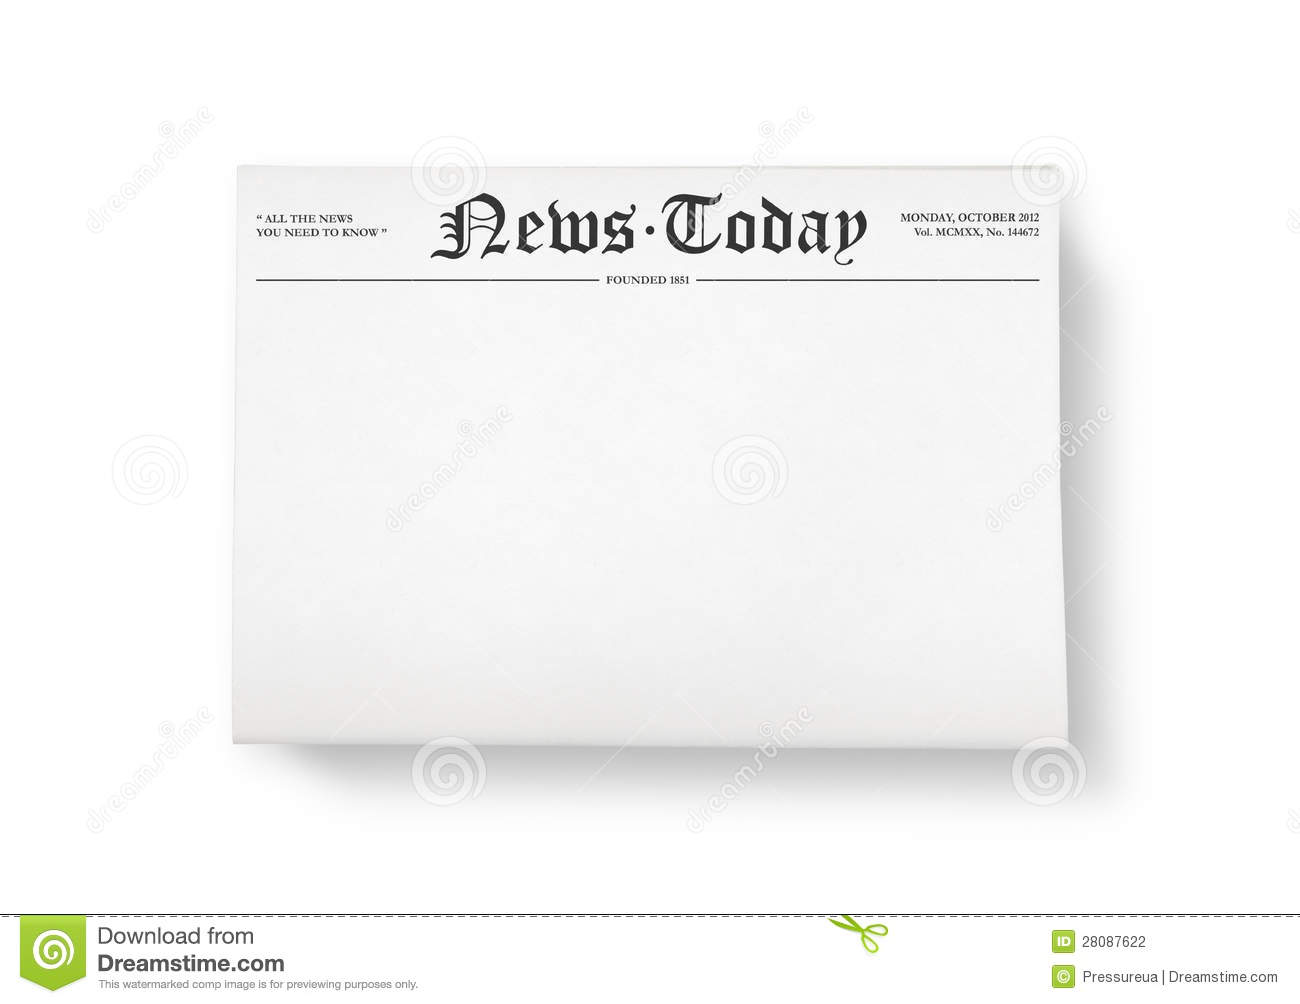 news today with blank space stock illustration - illustration of